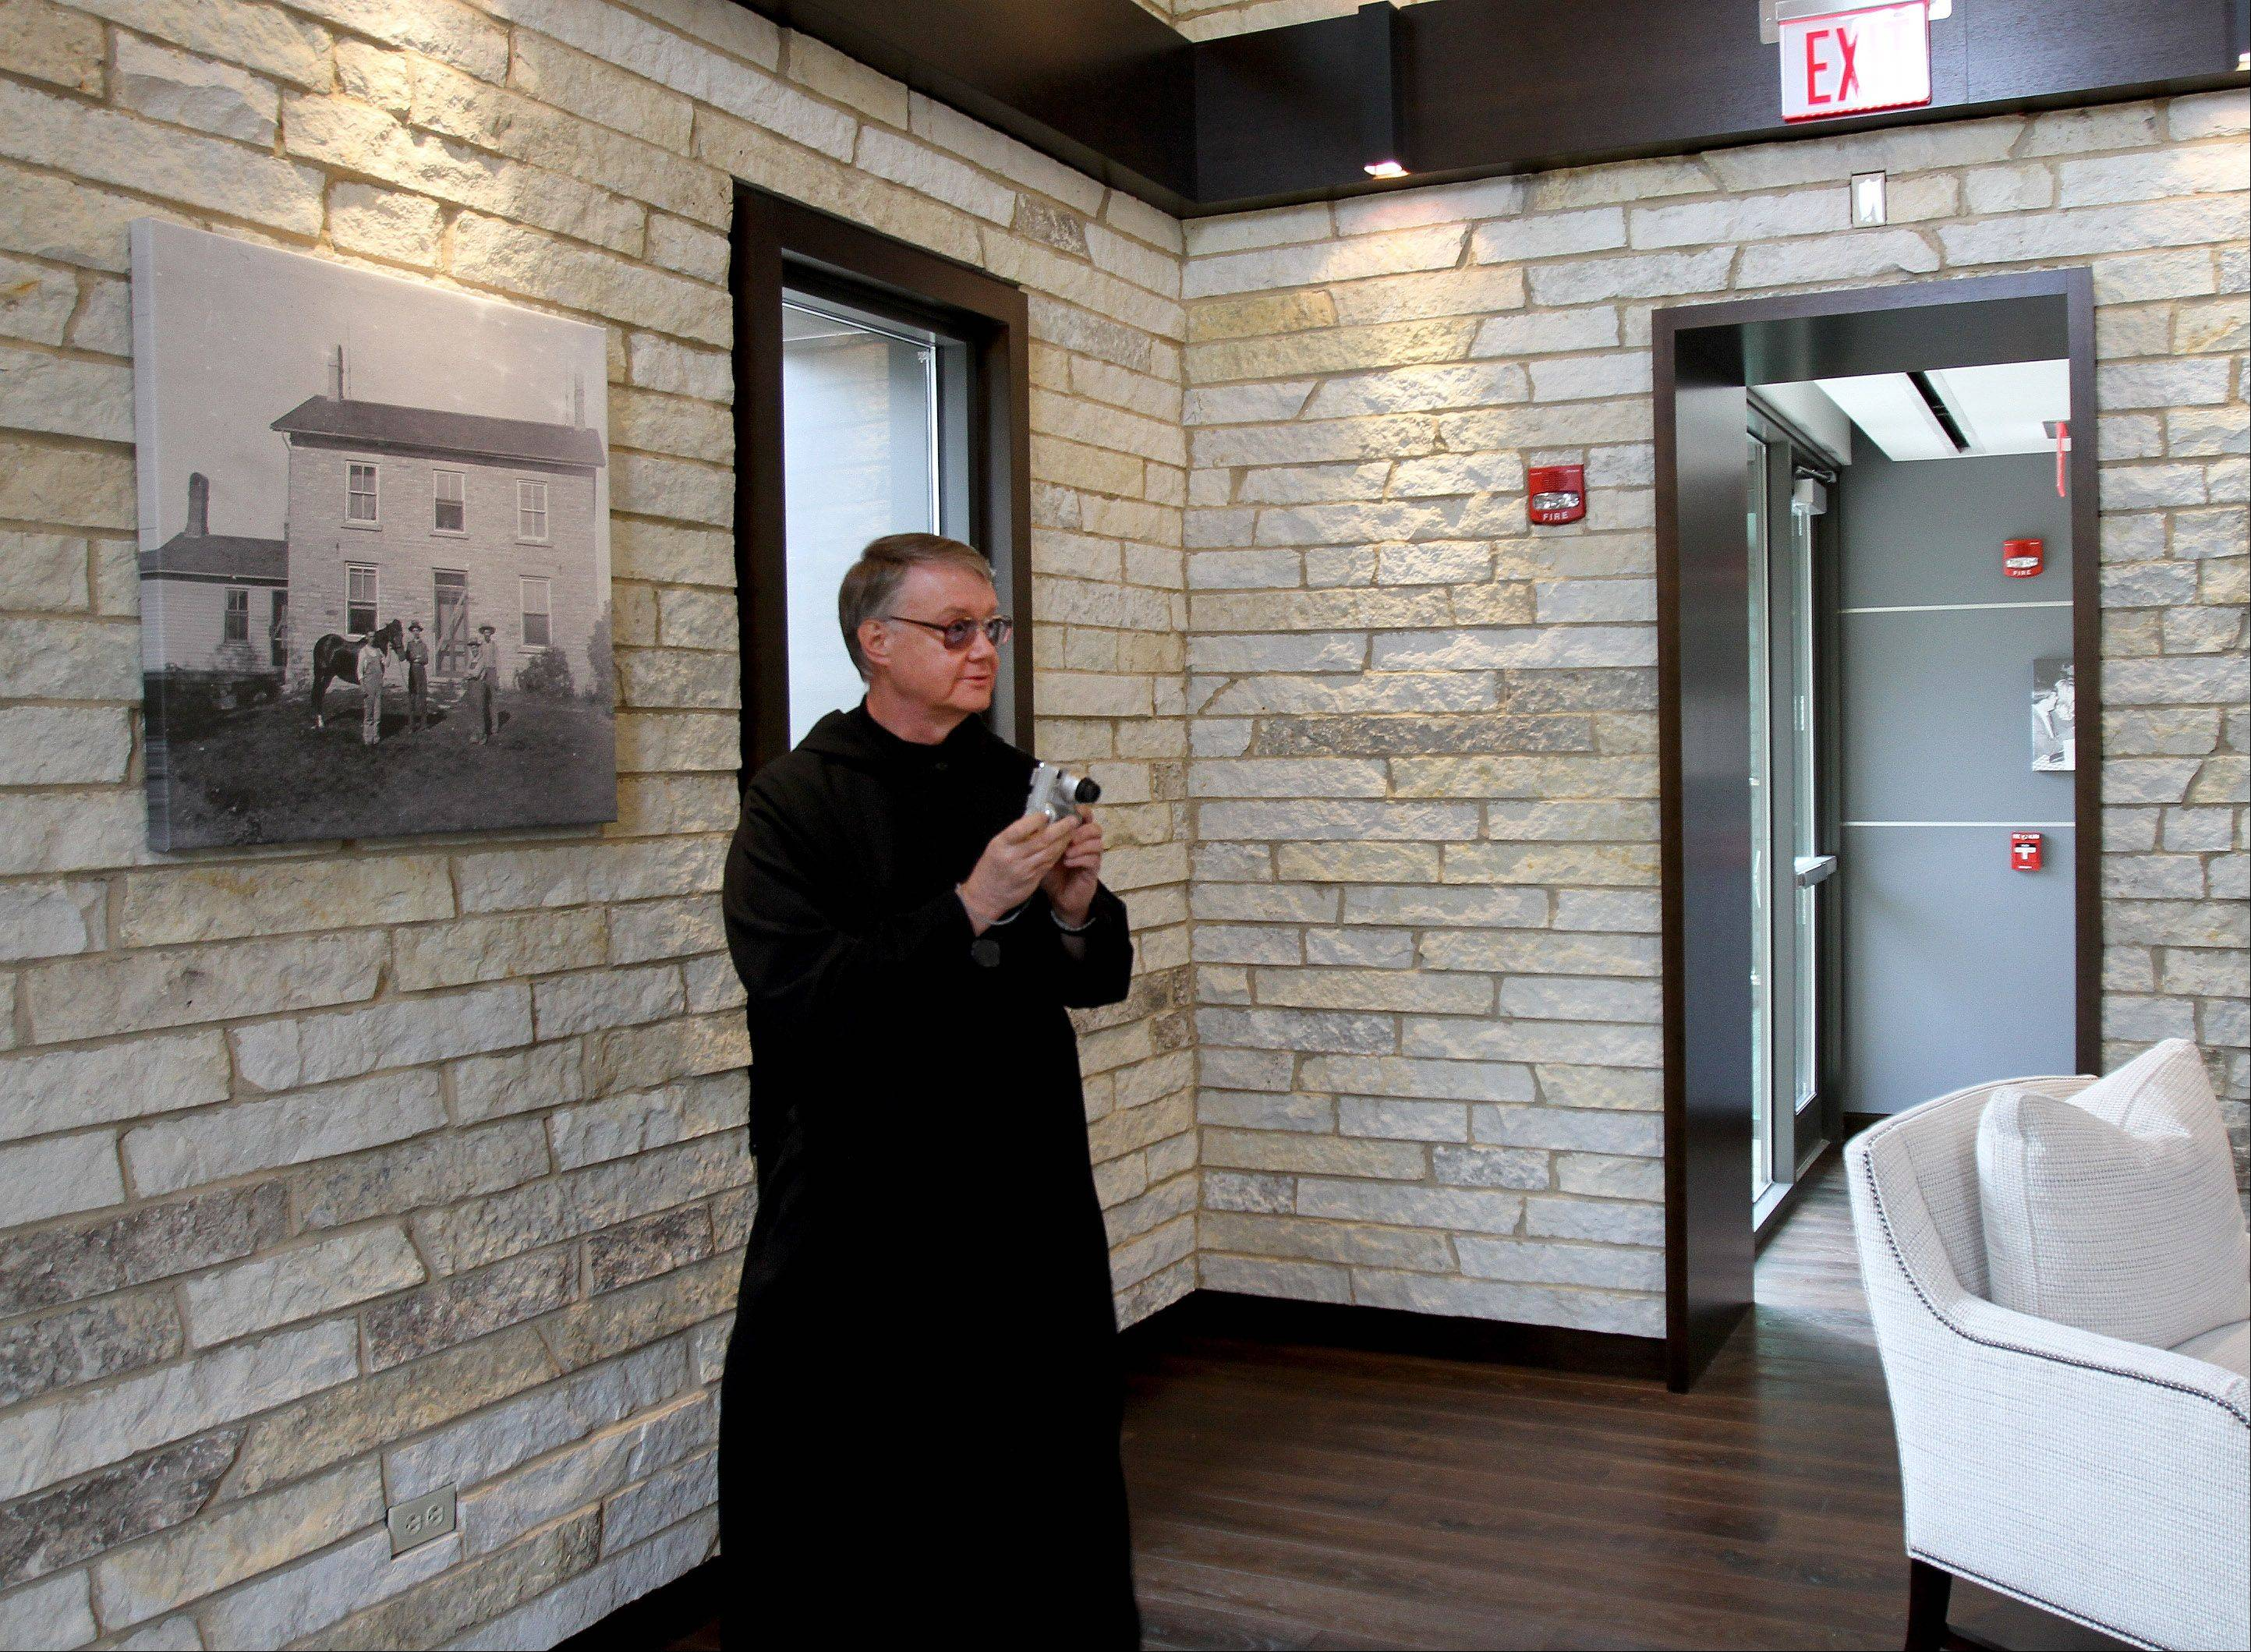 Brother Guy Jelinek, O.S.B., prior at Benedictine Abbey, gets some photos during the unveiling of the Neff Welcome Center at Benedictine University in Lisle. On the left is a photograph of the Neff Farmhouse, from which the new center is anchored.